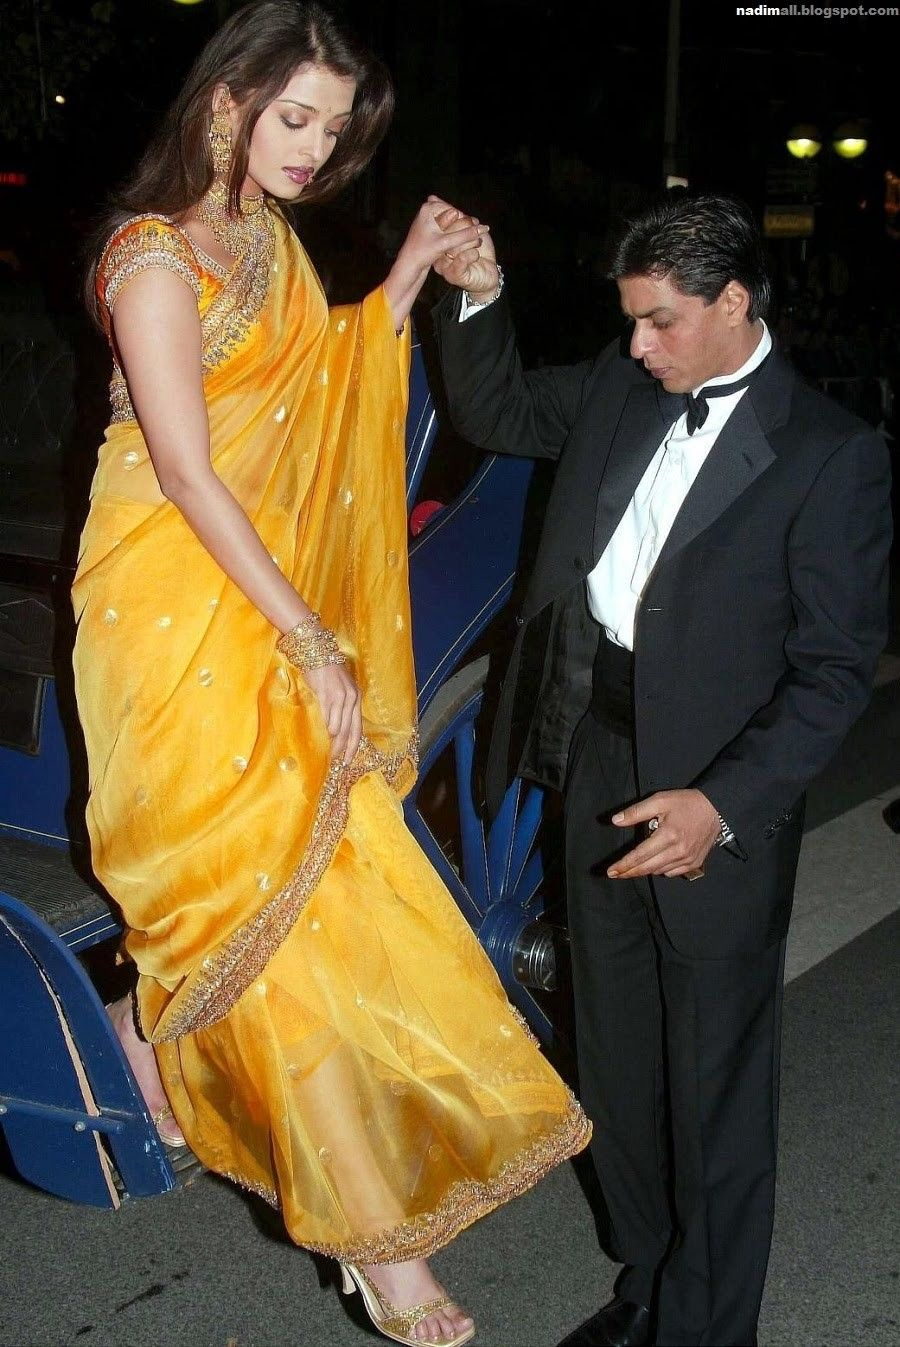 Aishwarya Rai S First Appearance At Cannes Film Festival For Her Movie Devdas In 2002 Aishwarya Rai Bollywood Celebrities Indian Actresses Bollywood Actress